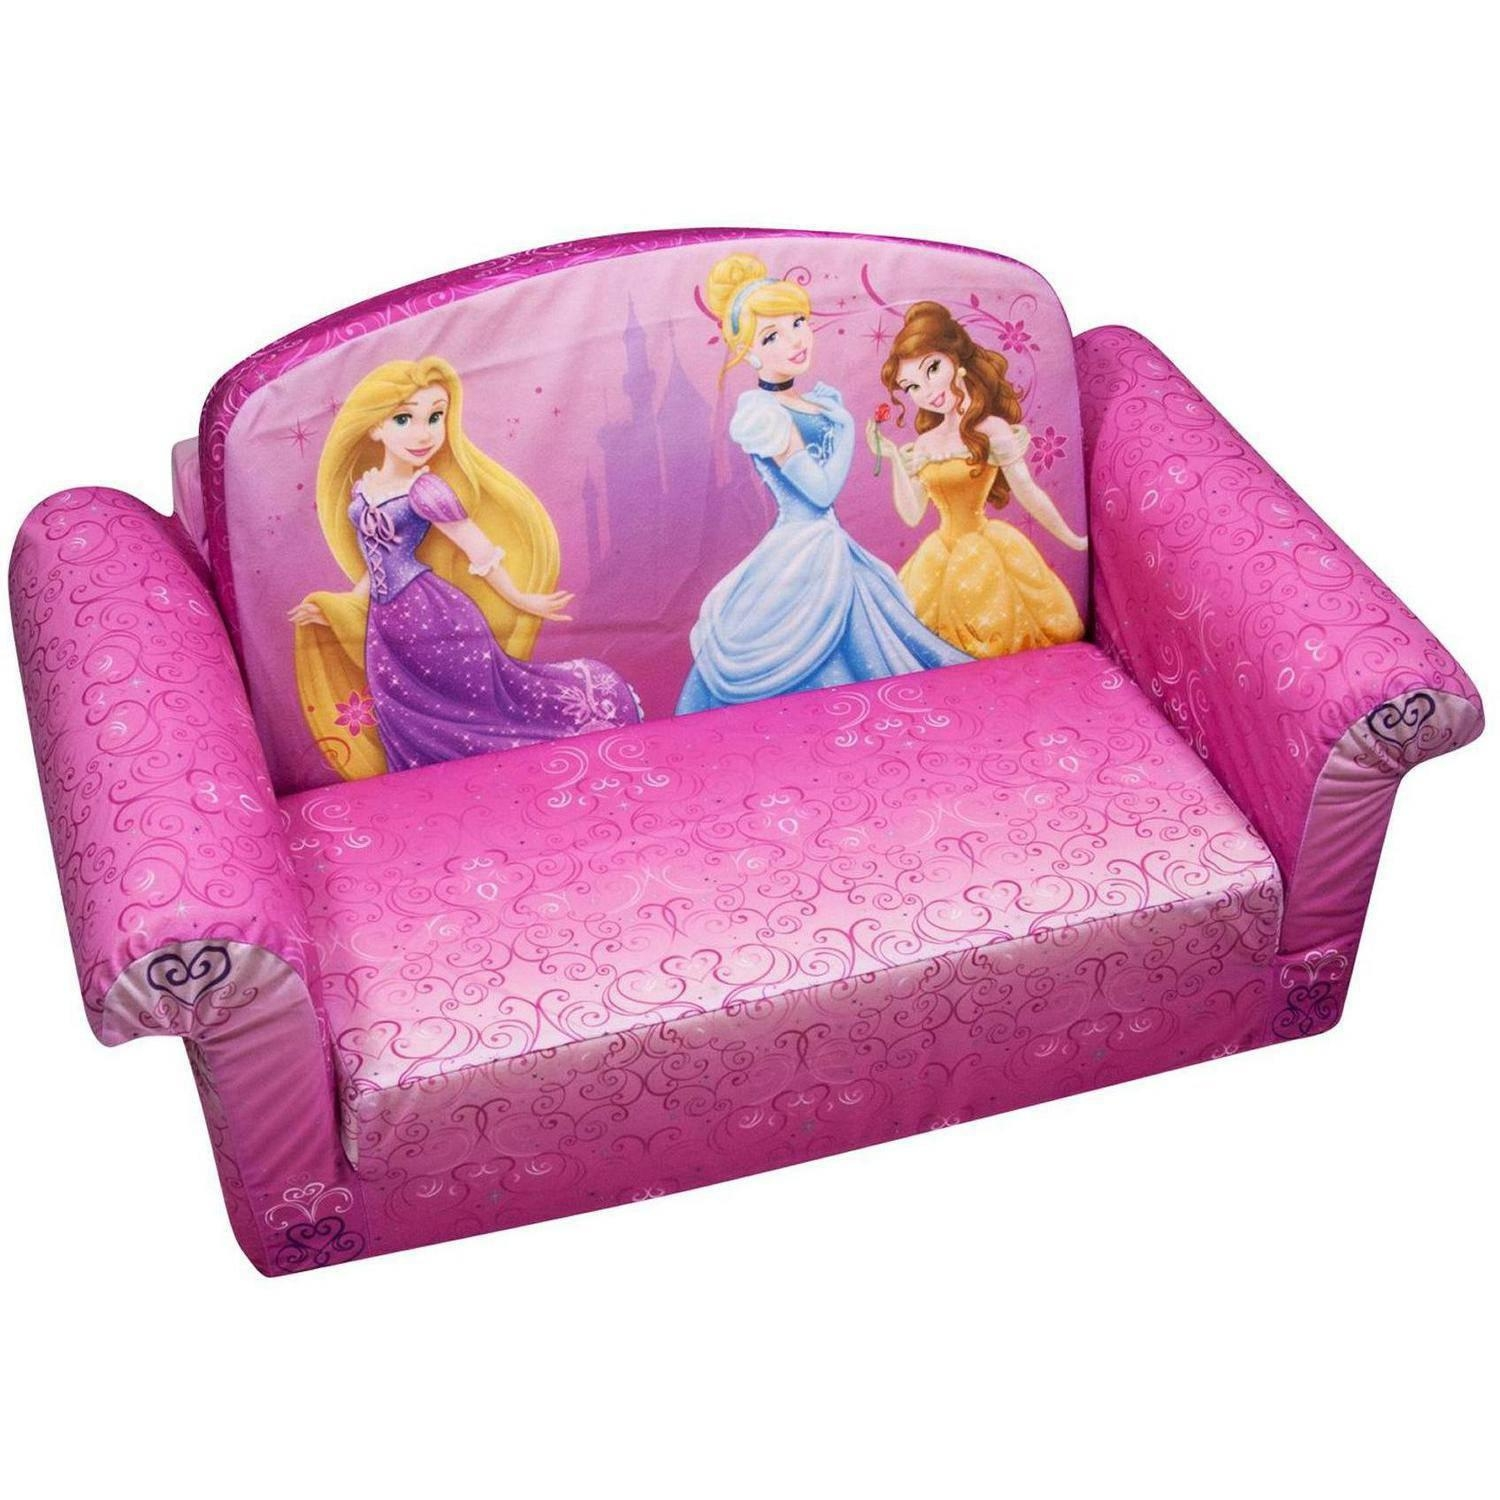 Featured Image of Disney Princess Couches